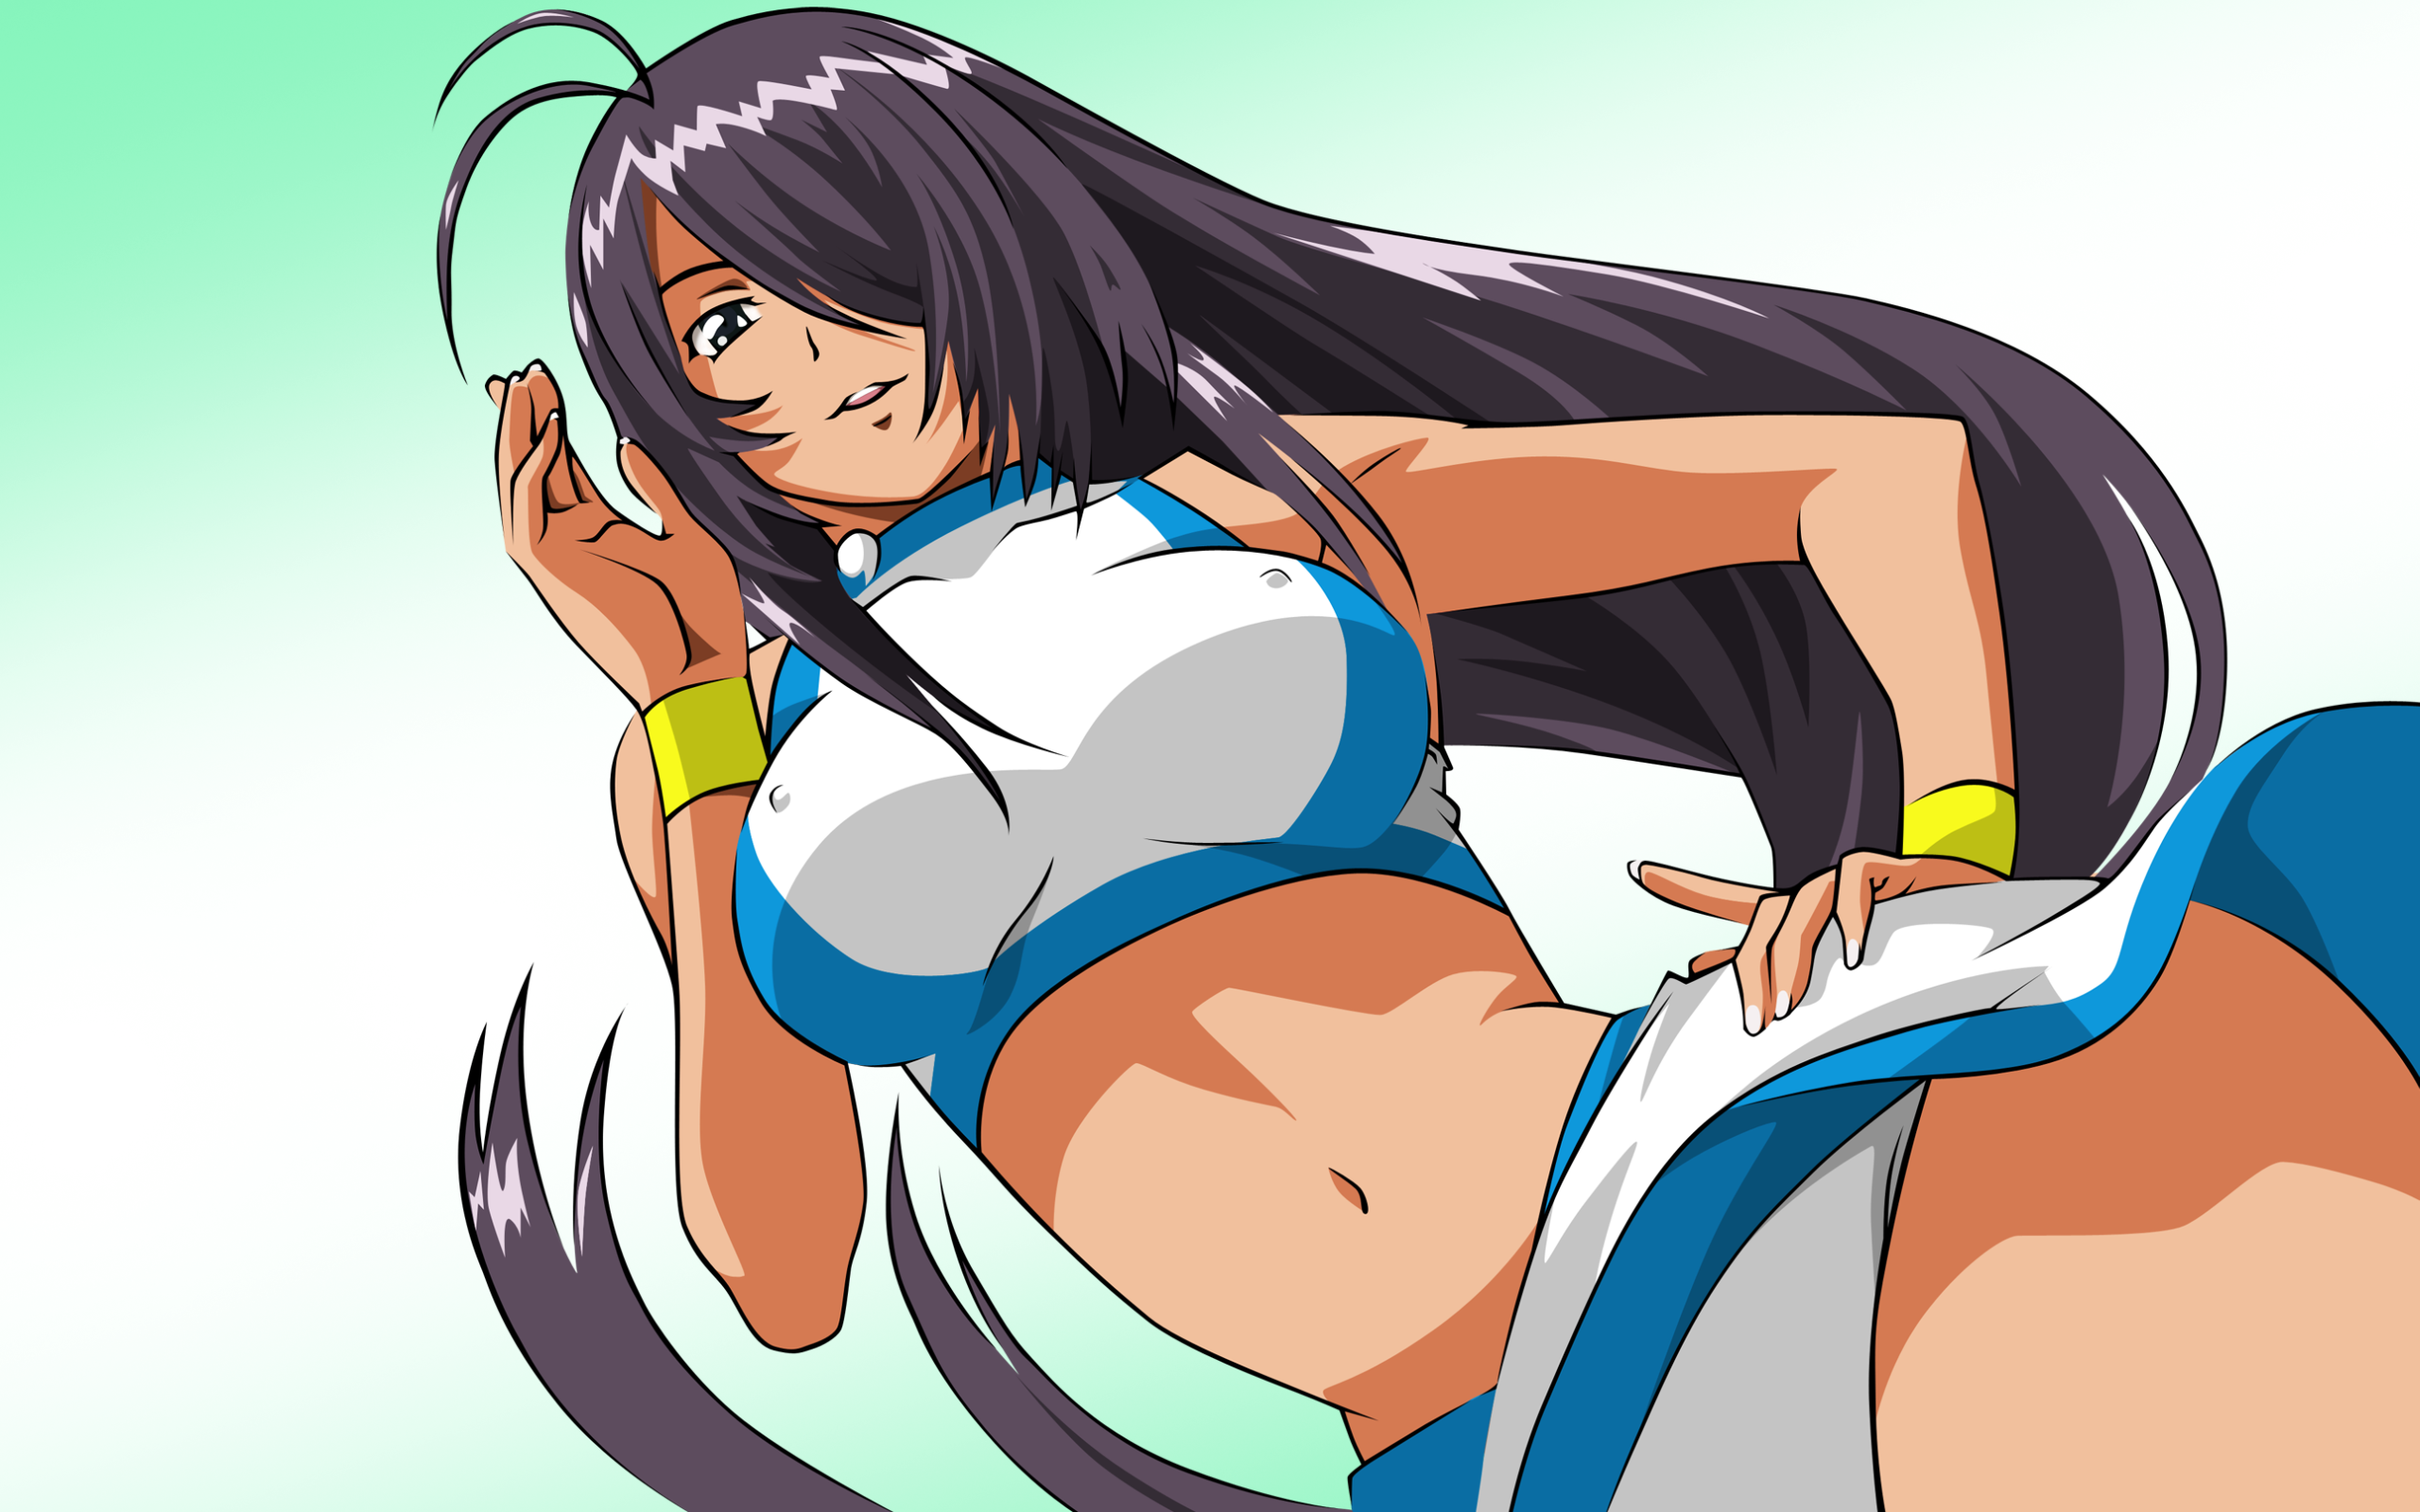 Ikkitousen girls hentai wallpapers sexy videos